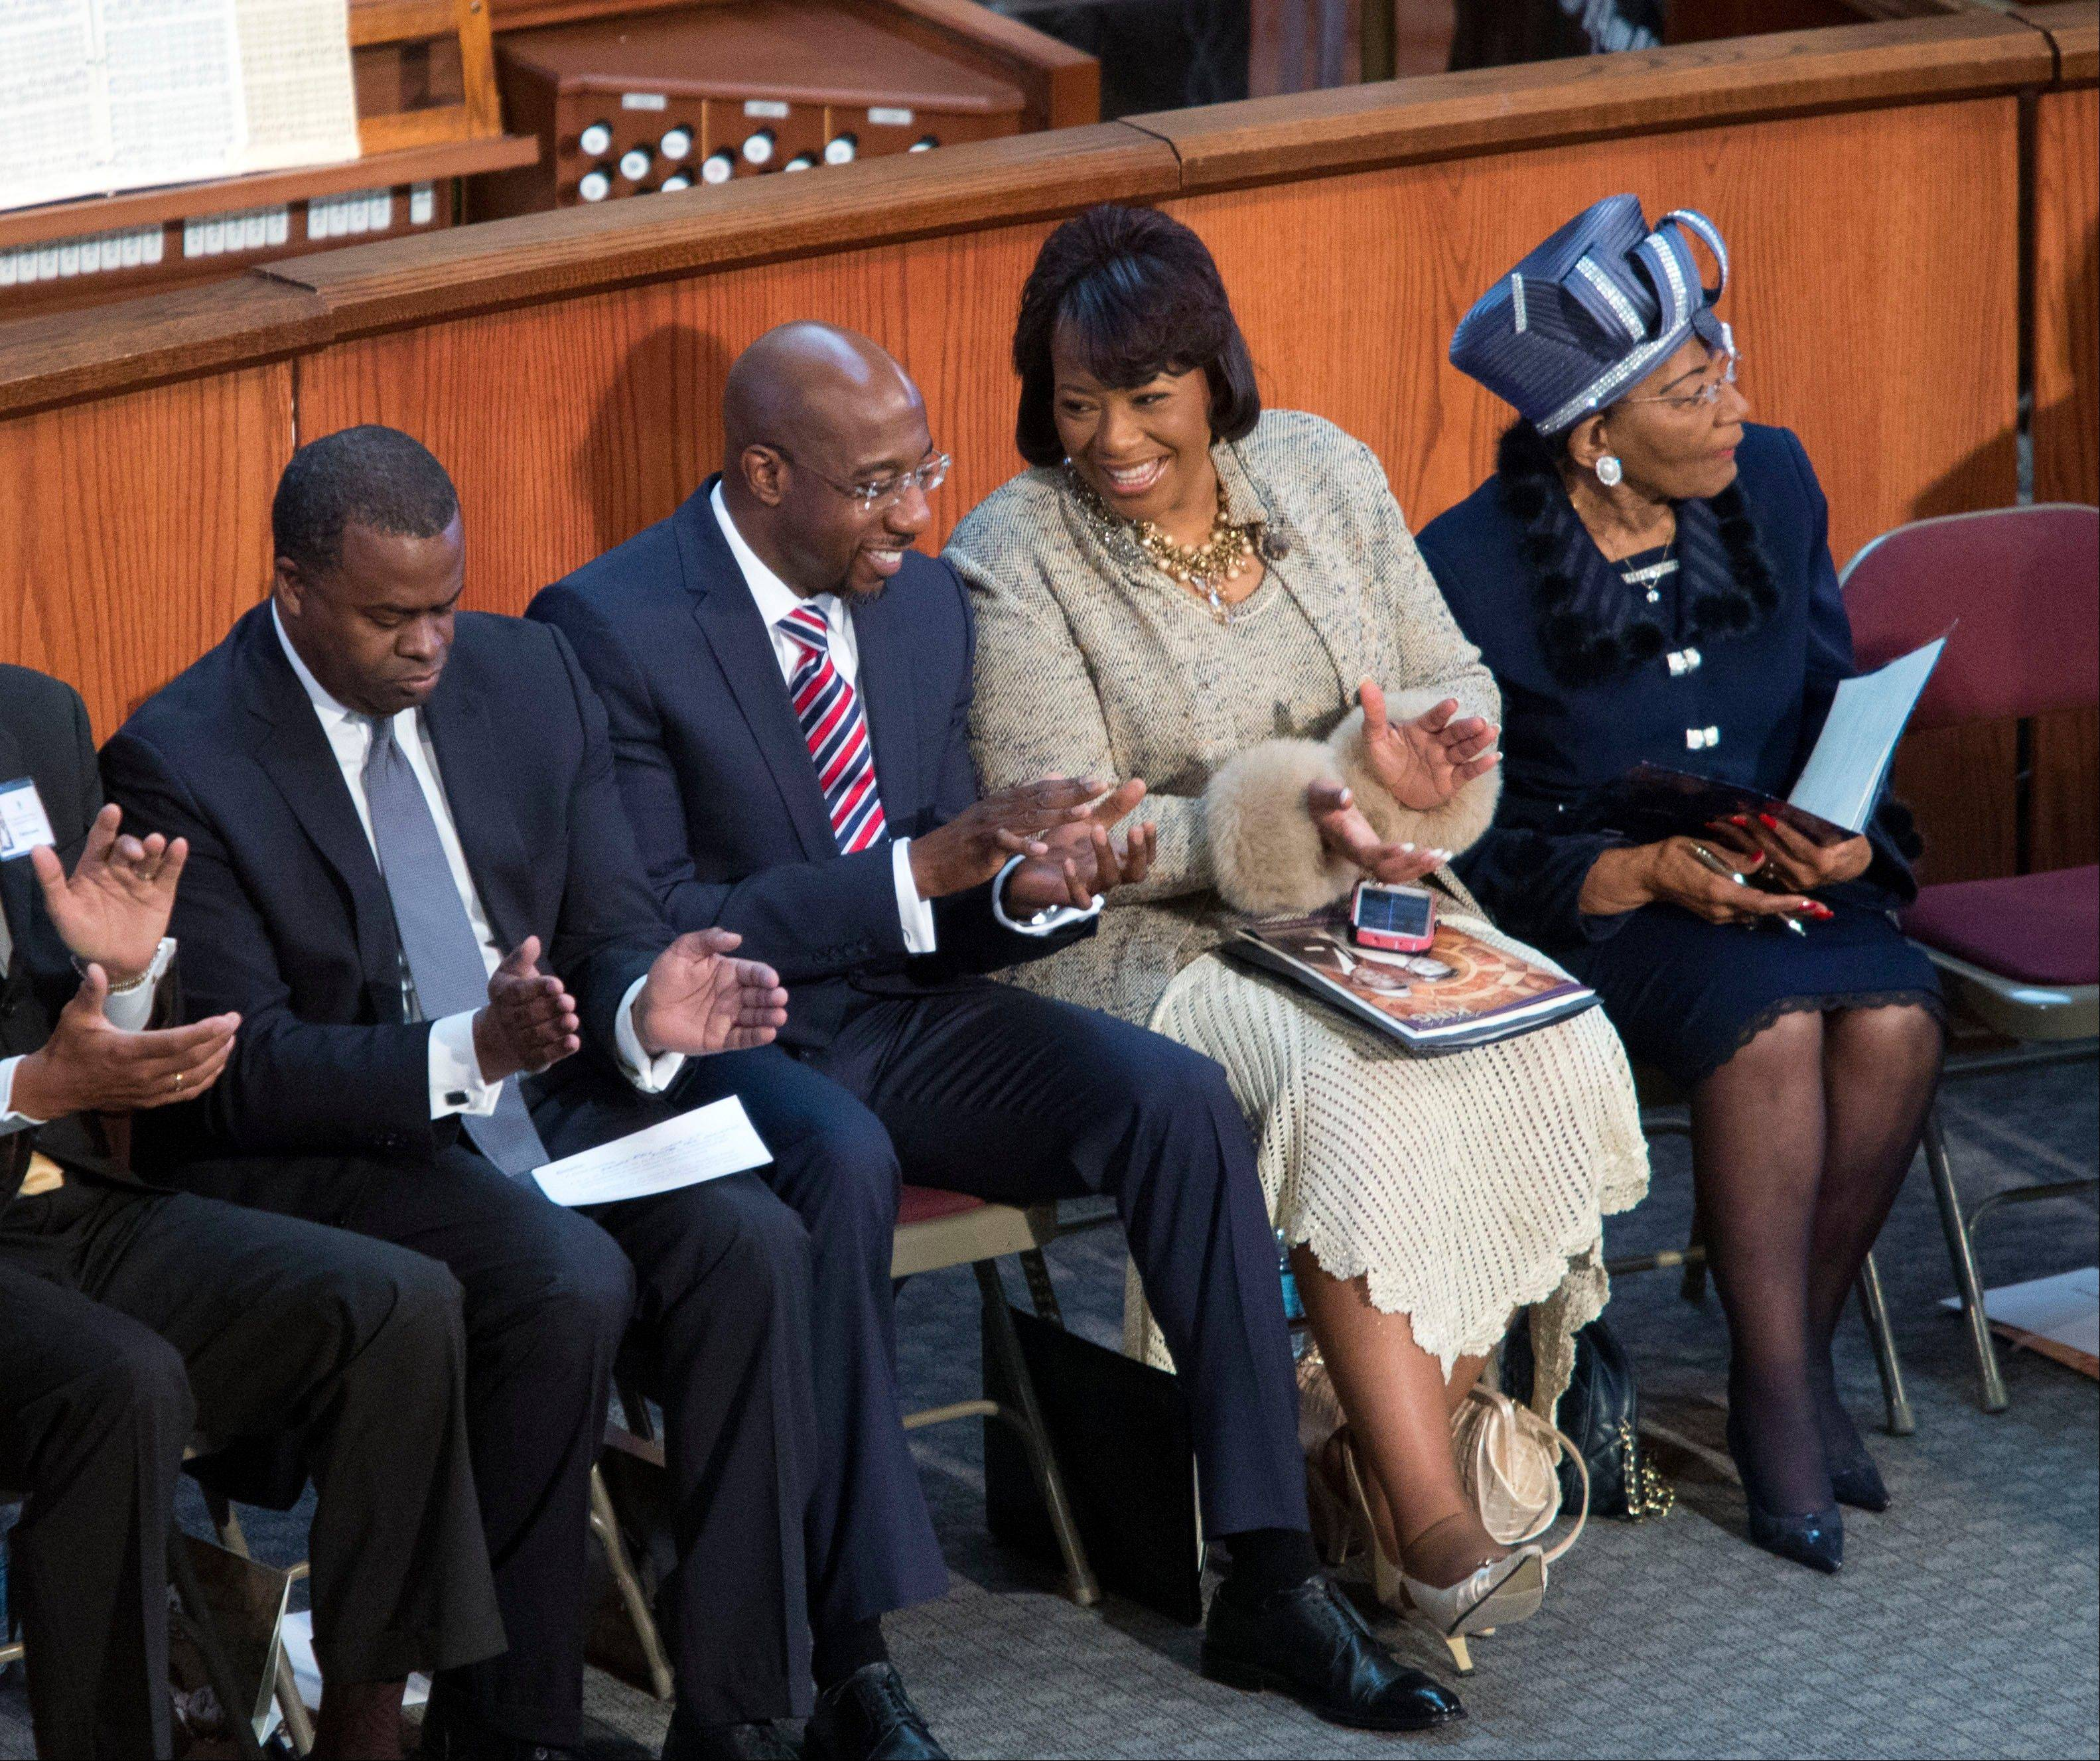 Bernice King, second from right, talks with pastor Raphael Warnock, second from left, during the Rev. Martin Luther King Jr. holiday commemorative service at Ebenezer Baptist Church Monday, Jan. 20, 2014, in Atlanta. Bernice King is the daughter of the late Dr. Martin Luther King Jr., and Christine King Farris, right, is the only living sibling of the late Dr. Martin Luther King Jr.. Also pictured is Atlanta mayor Kasim Reed, left.